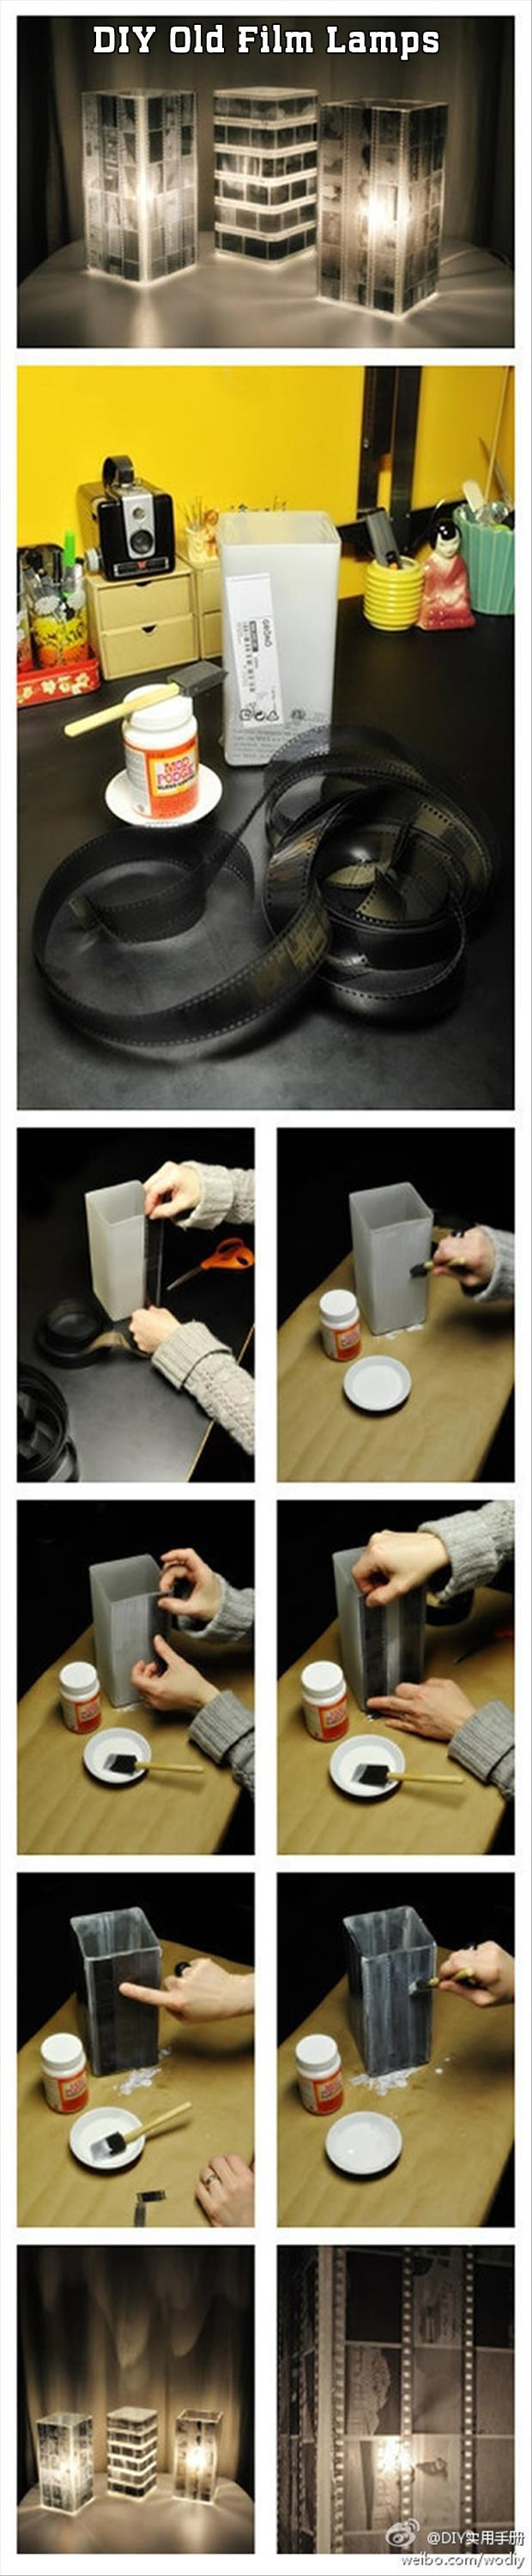 do-it-yourself-crafts-71